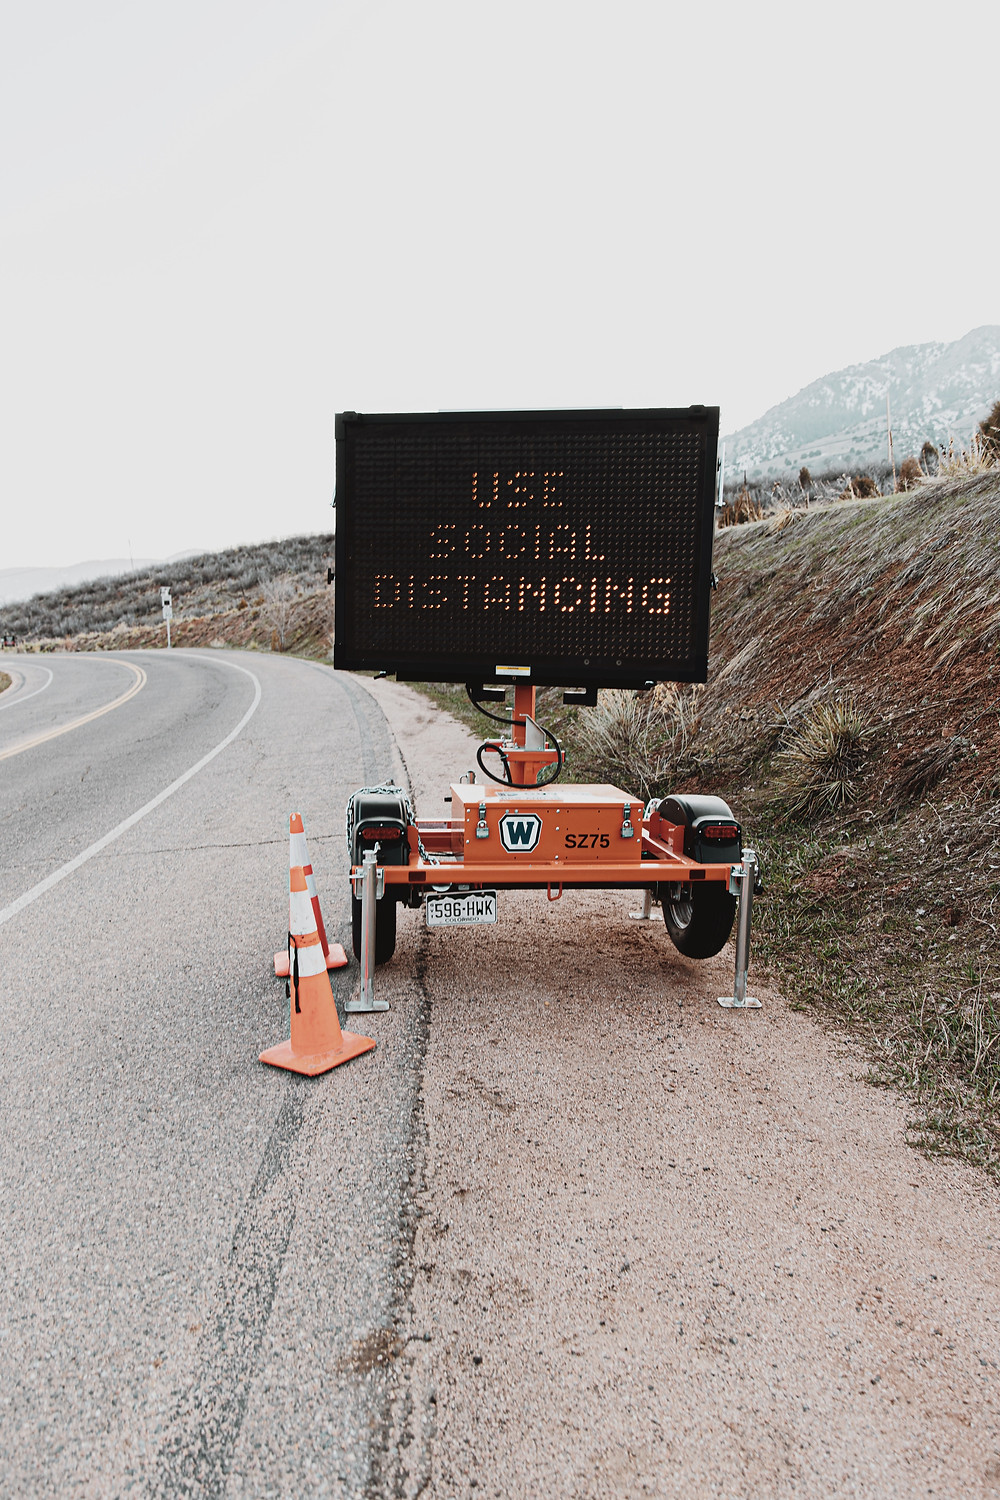 Sign on side of road reminding drivers to social distance